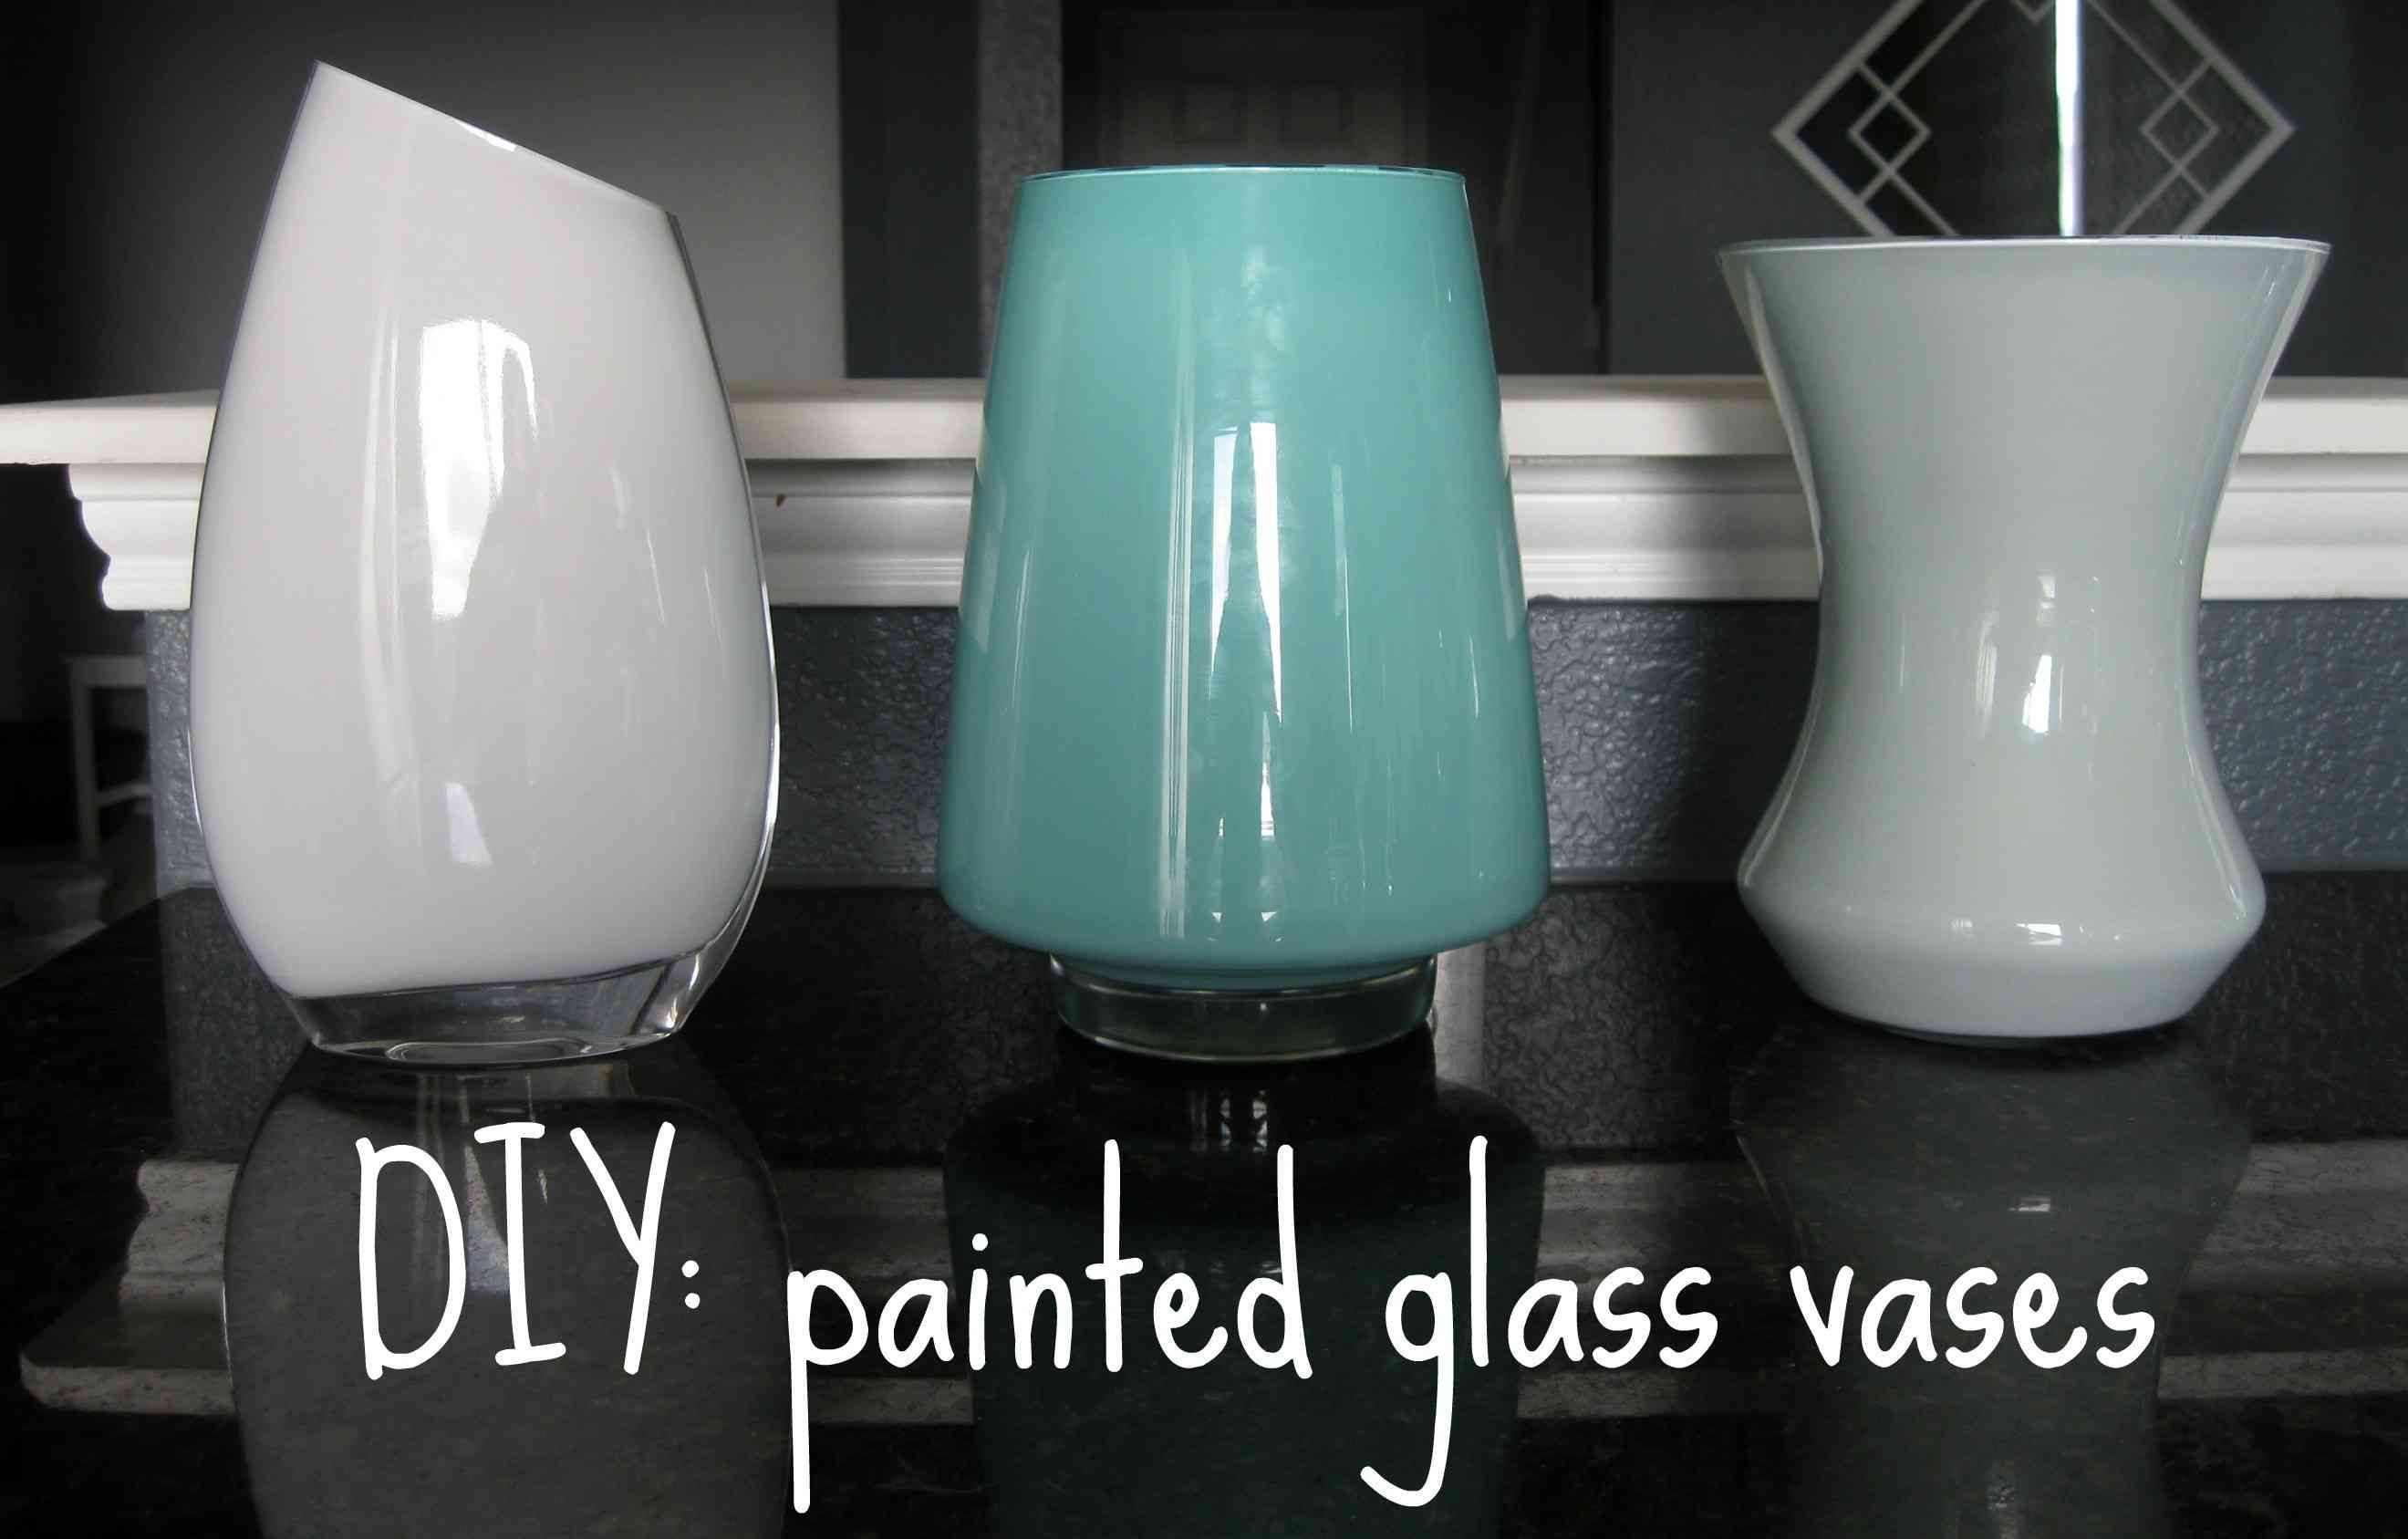 bohemian cut glass vase of 23 blue crystal vase the weekly world with diy painted glass vasesh vases how to paint vasesi 0d via conejita info